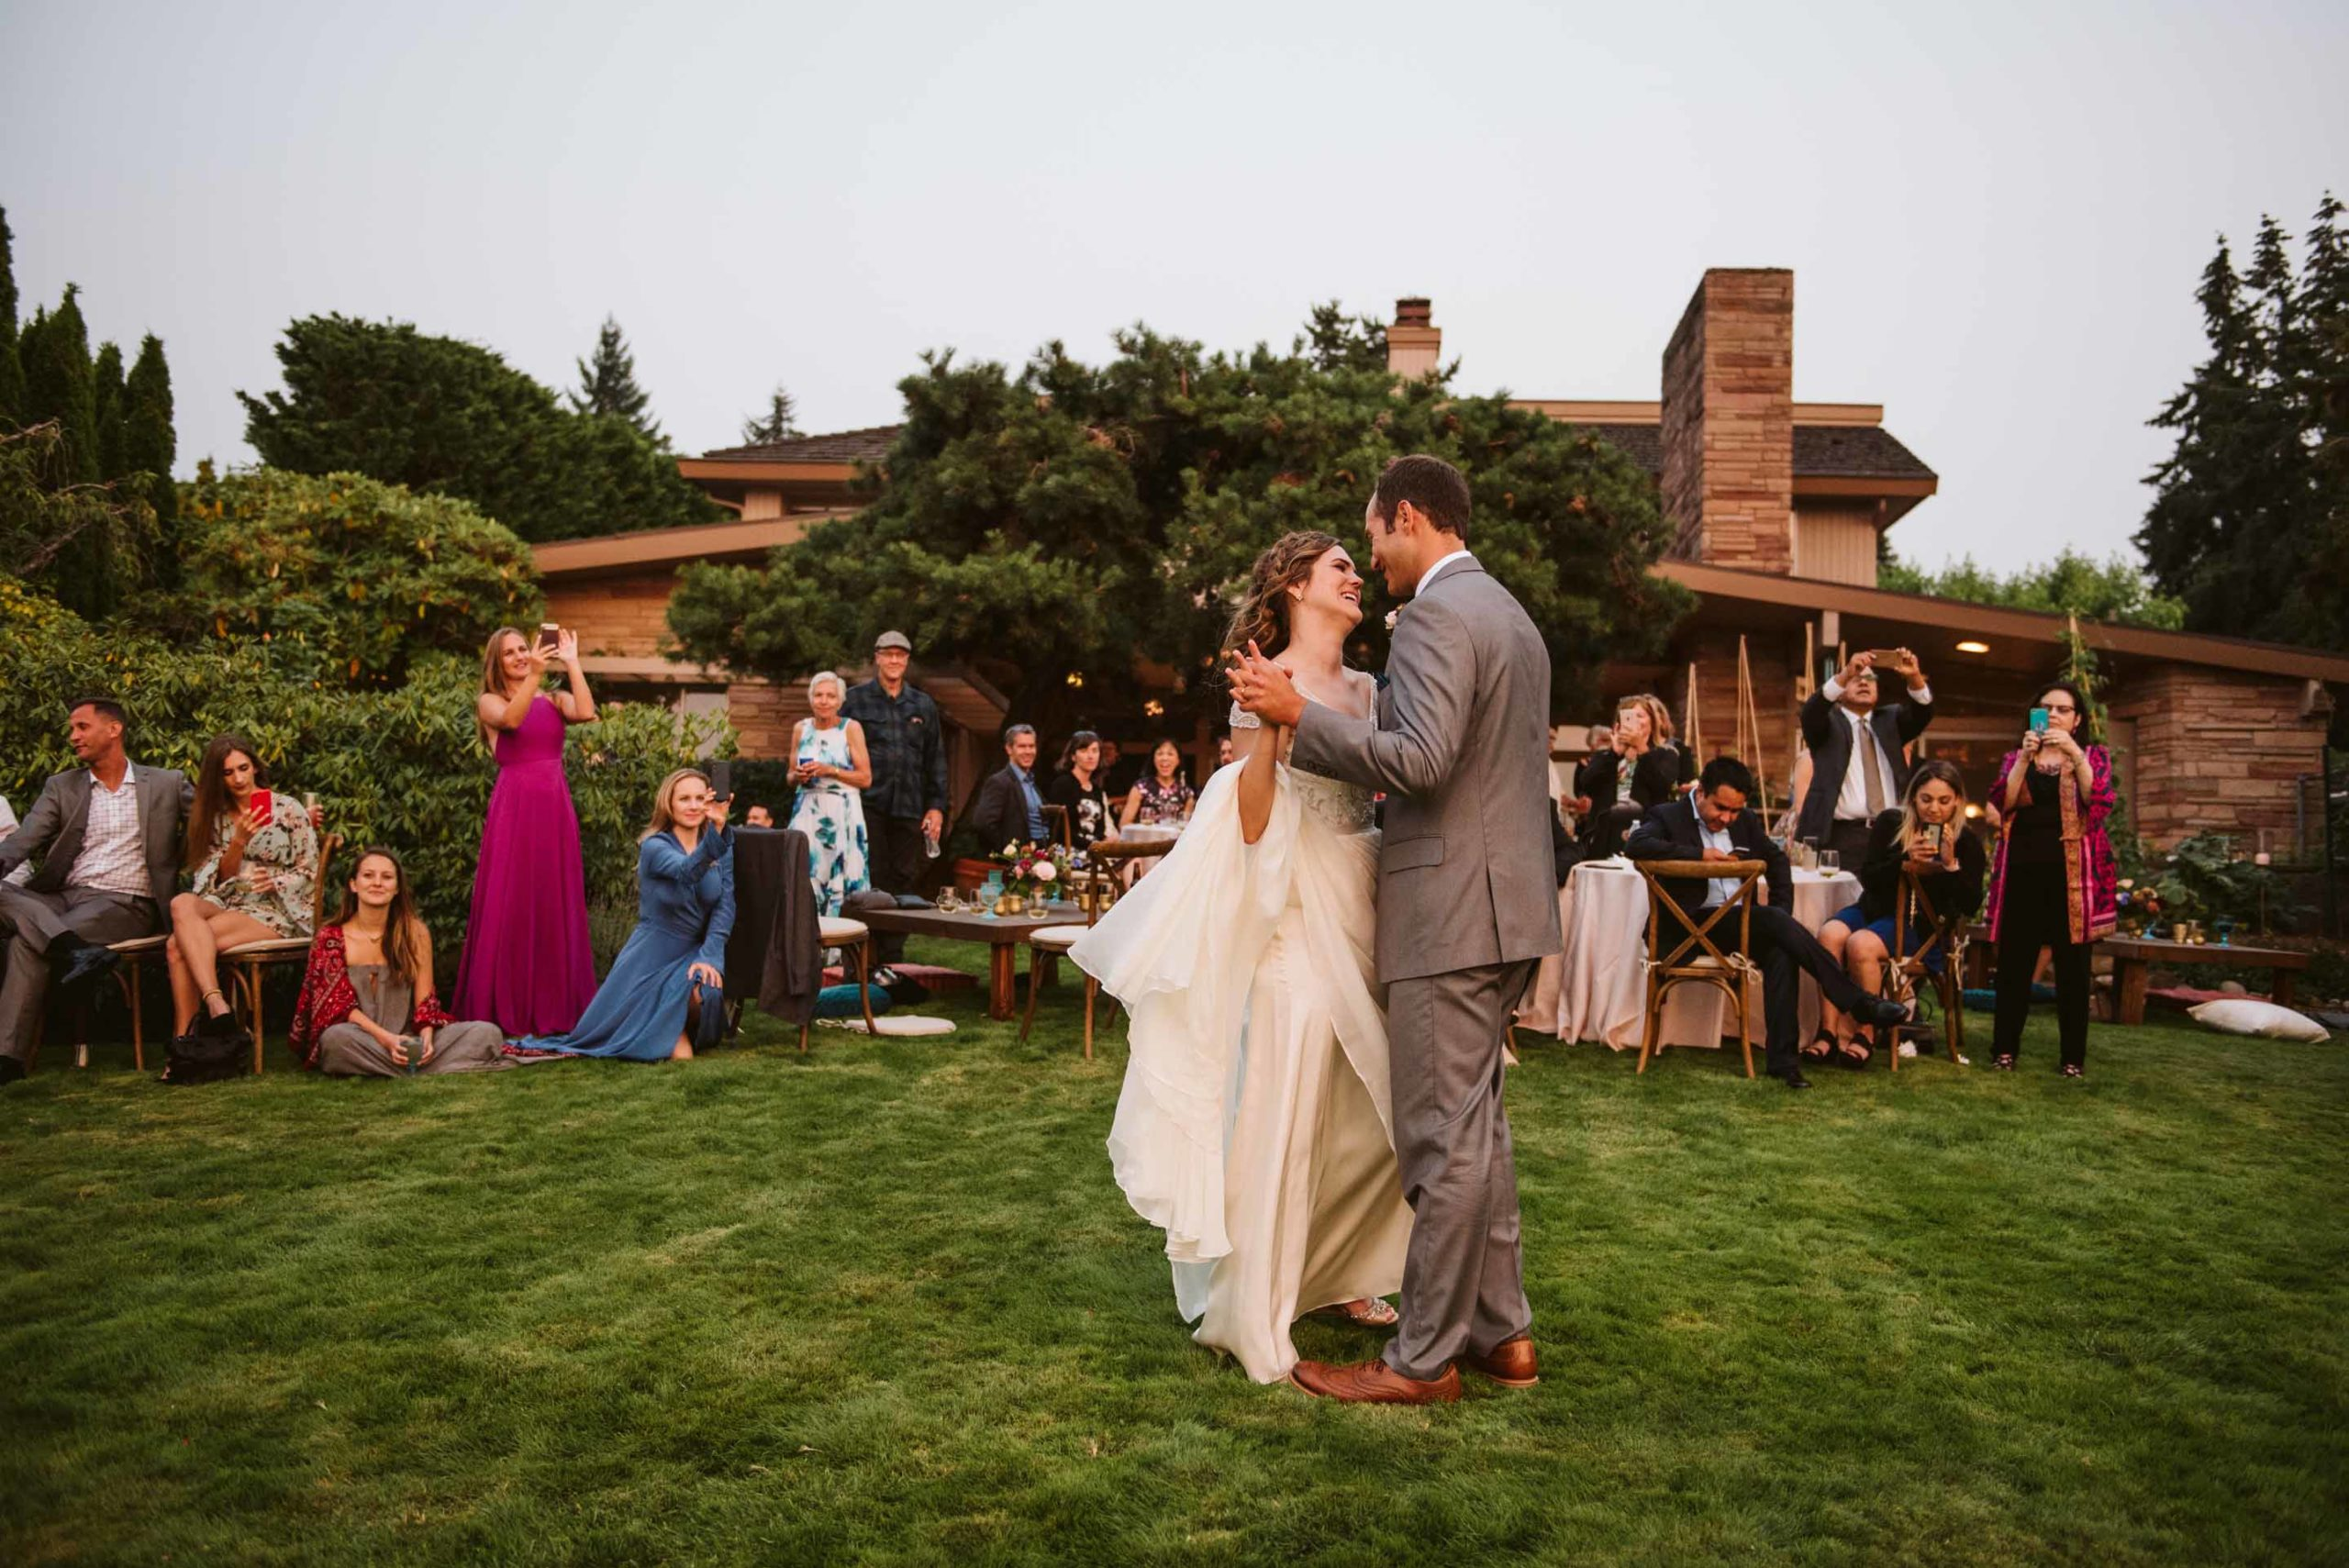 Bride and groom's first dance on the lawn of the backyard where they held their summer wedding